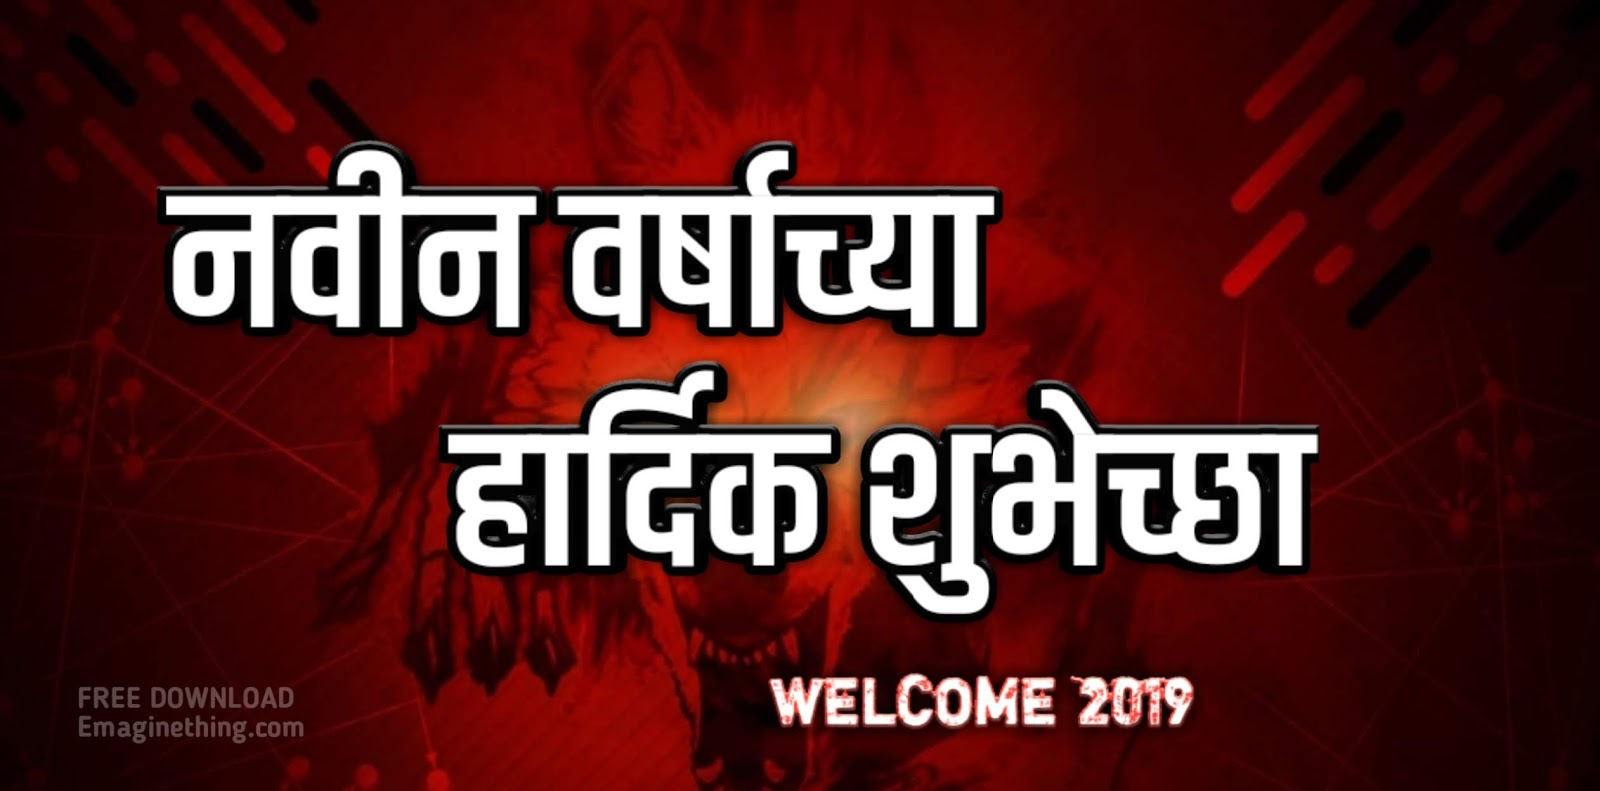 Best New Year Hindi Marathi Wishes Shayari 2019 Free Download